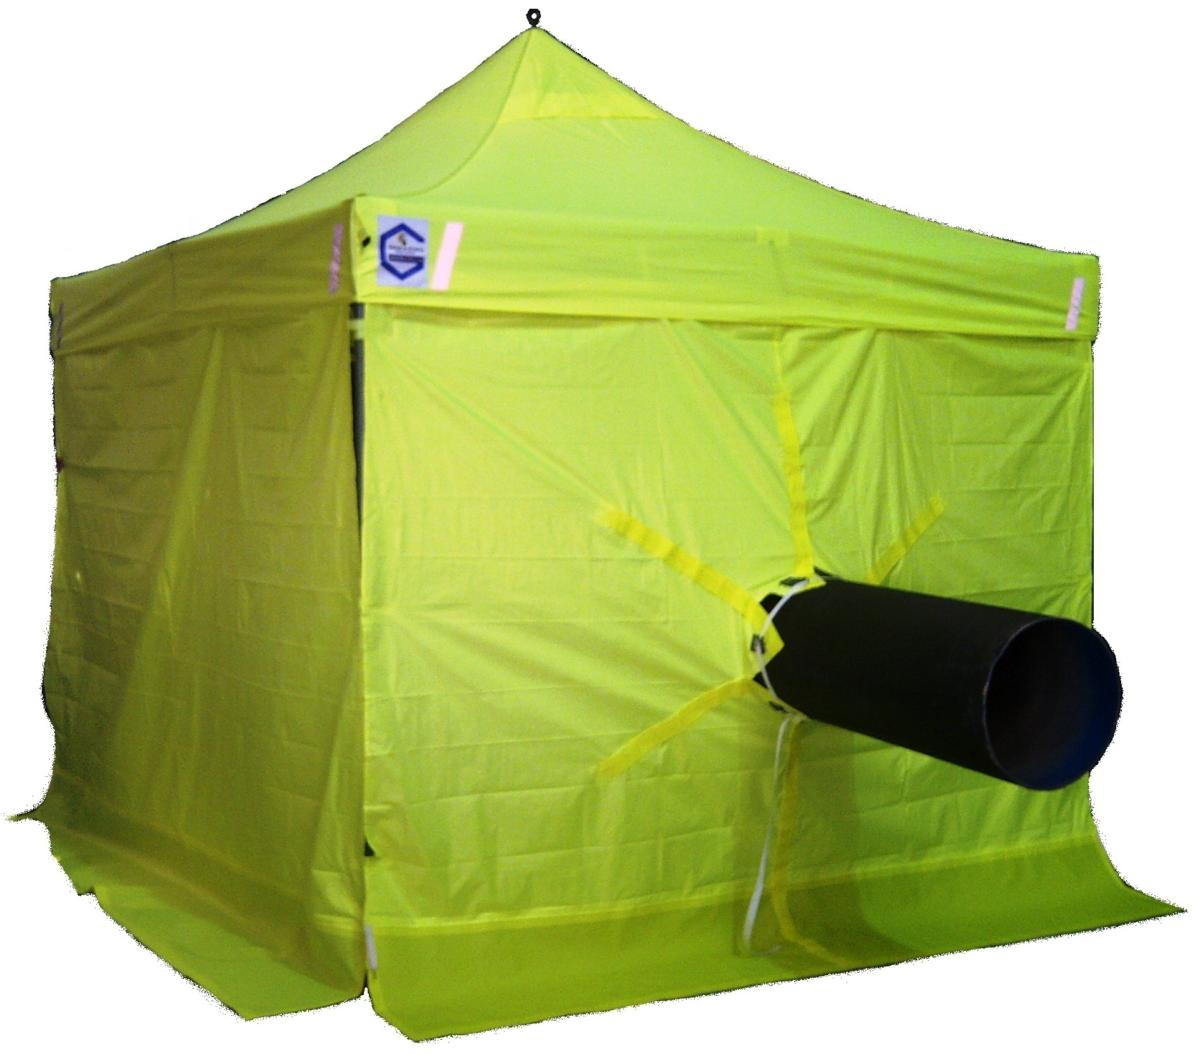 Grab-a-Shack welding tent with pipe passing through.  sc 1 st  Hex-Hut & Hex-Hut u2013 Grab-A-Shack